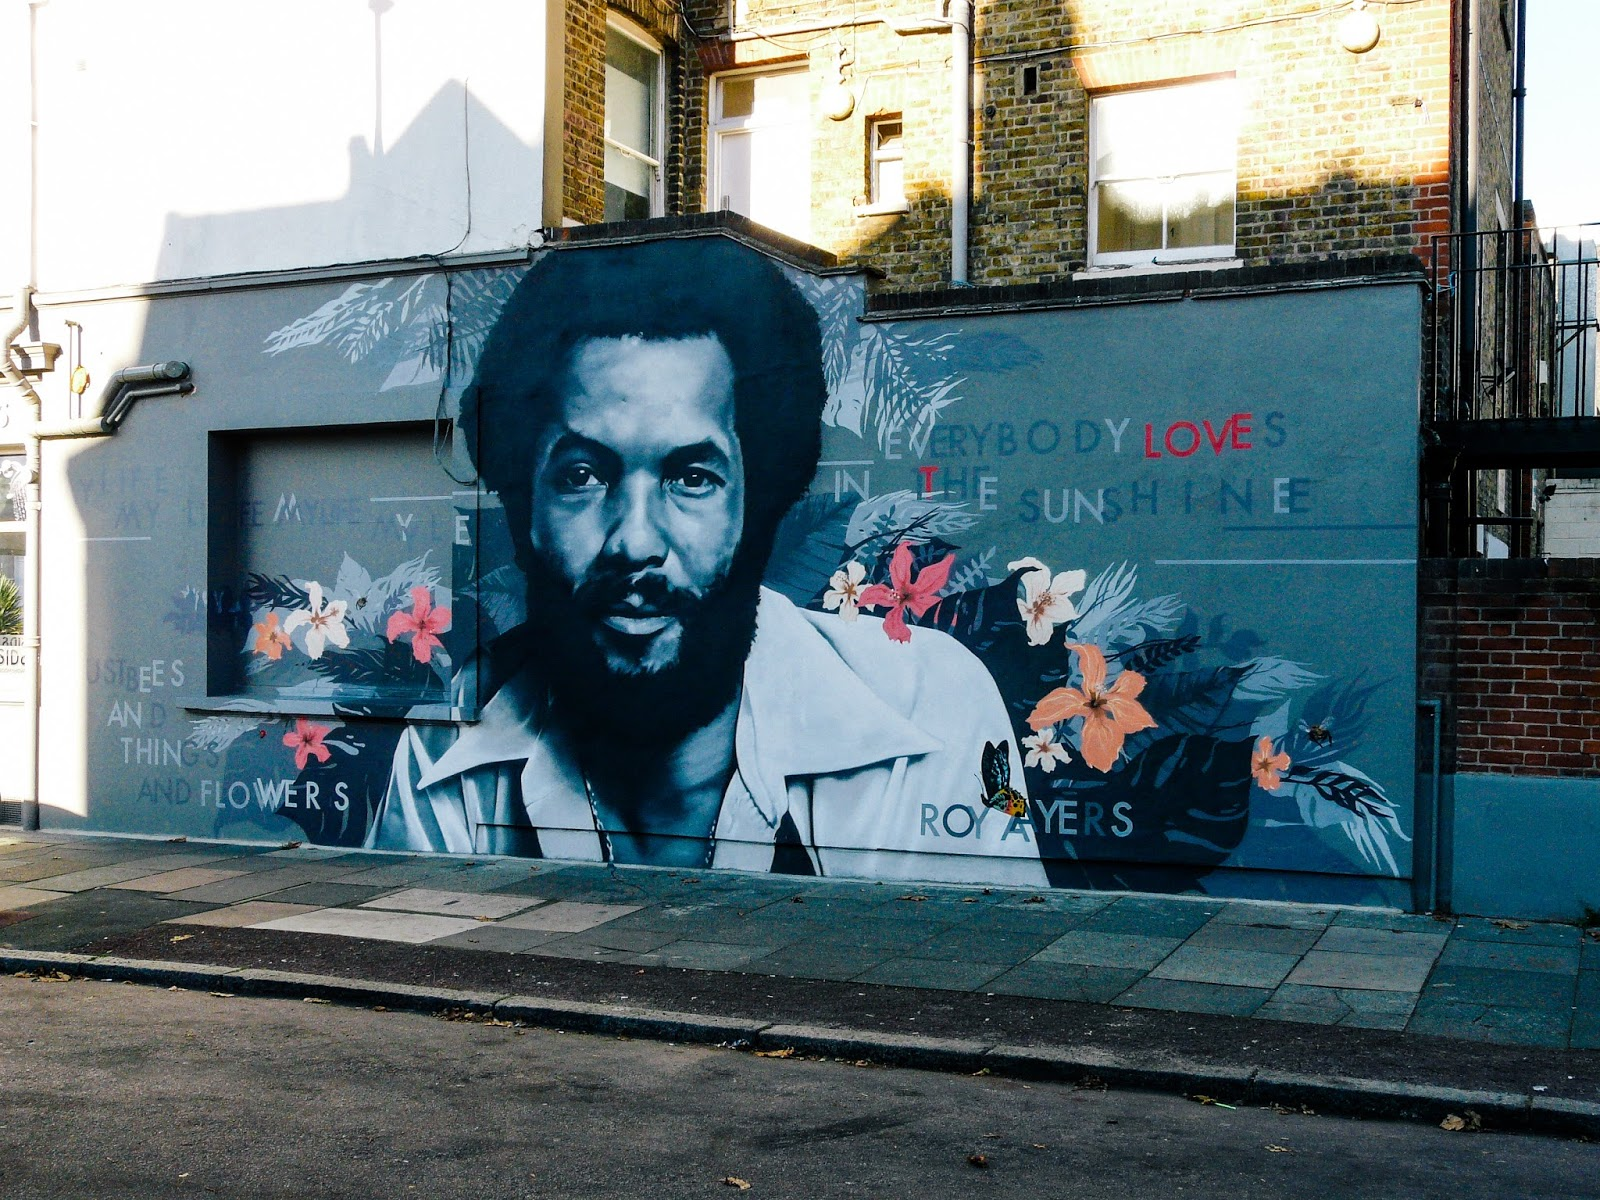 Roy Ayers Mural von Richard Wilson aus Brockley UK